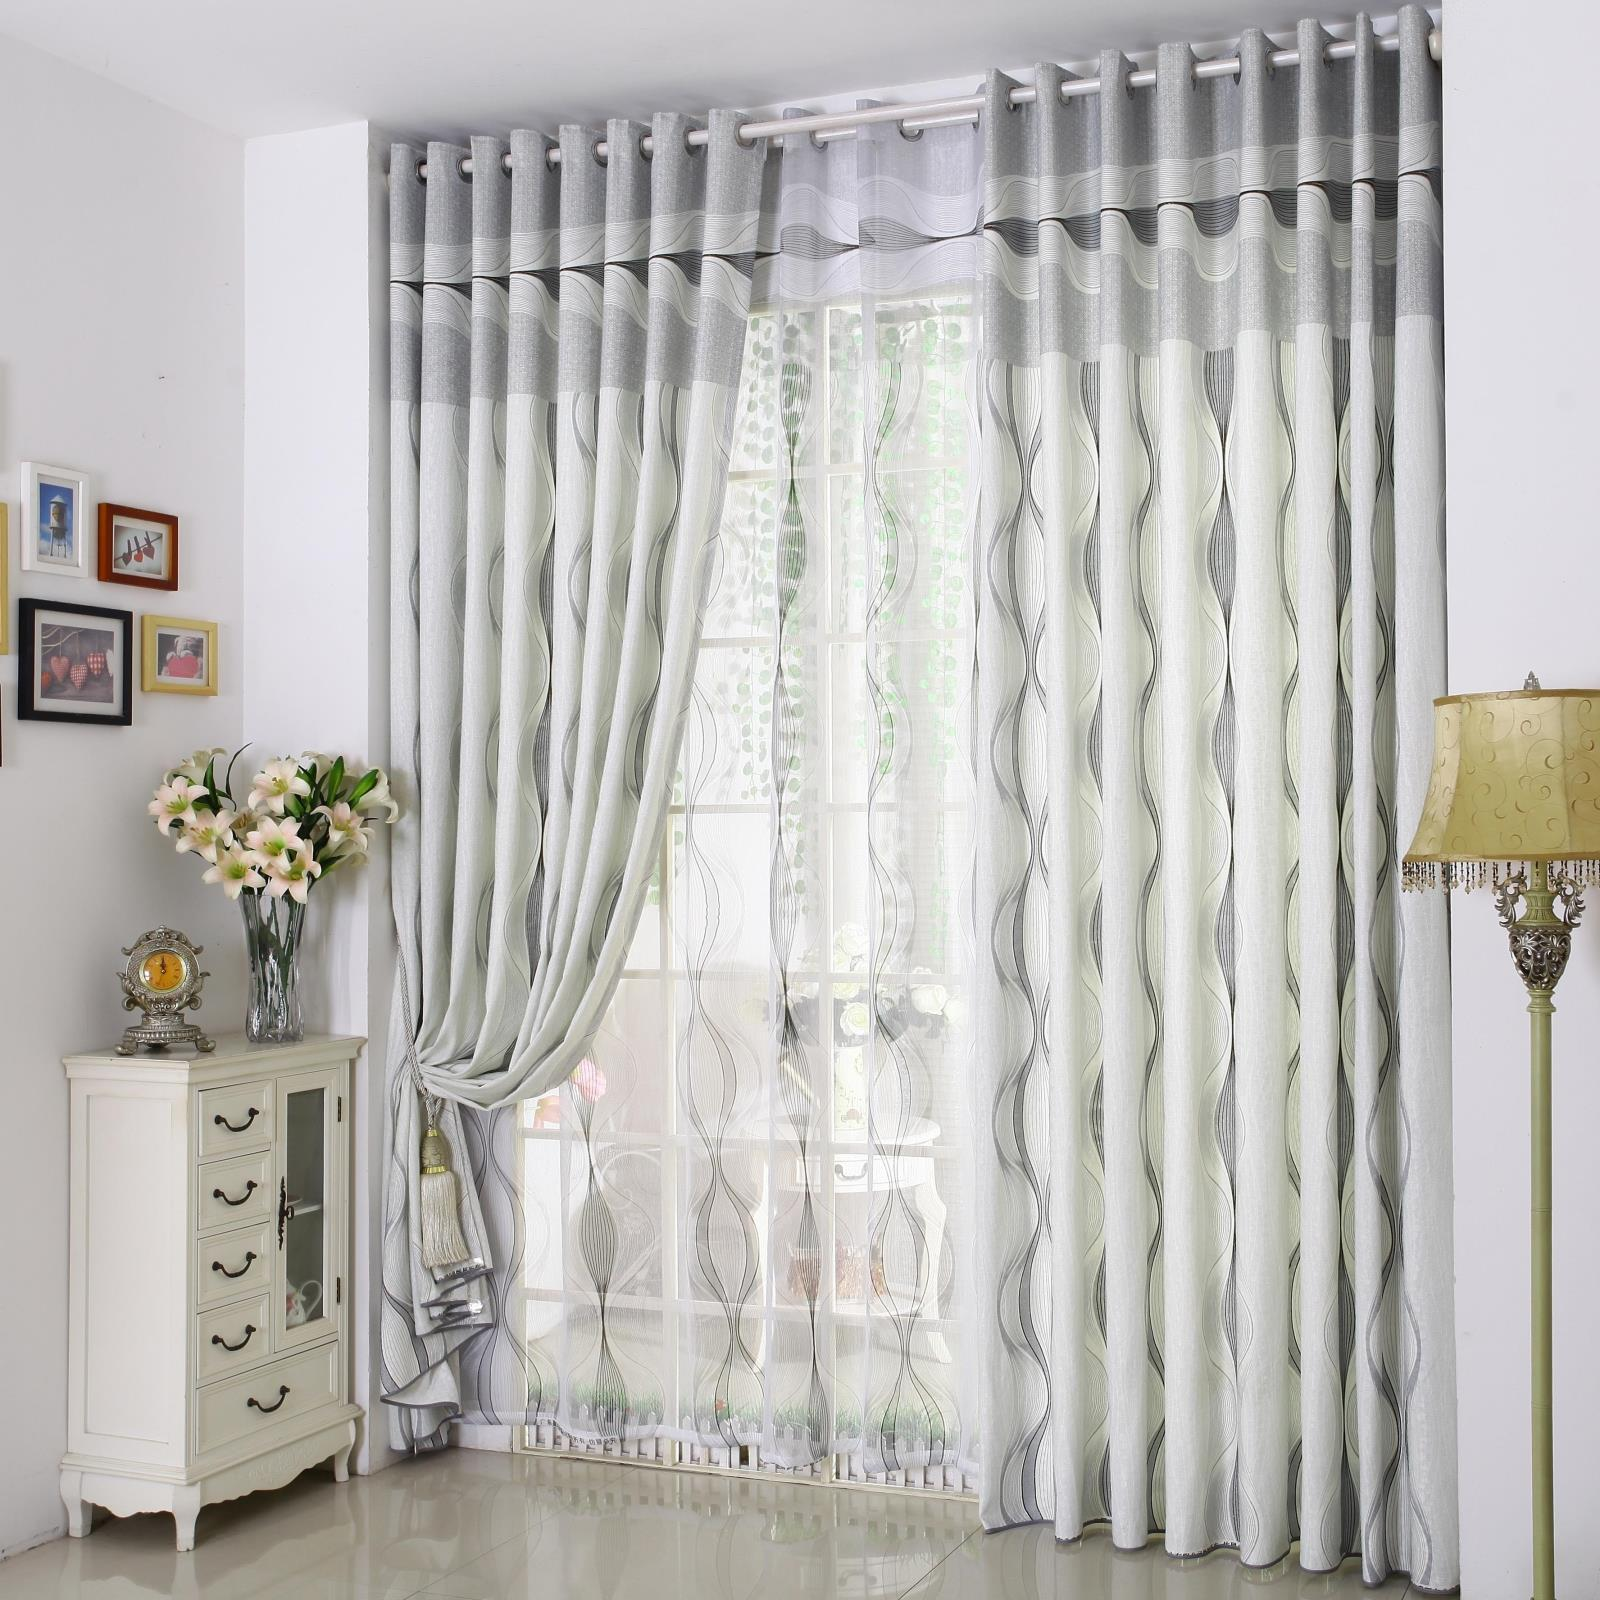 Funny Gray Striped Curtains Modern Design